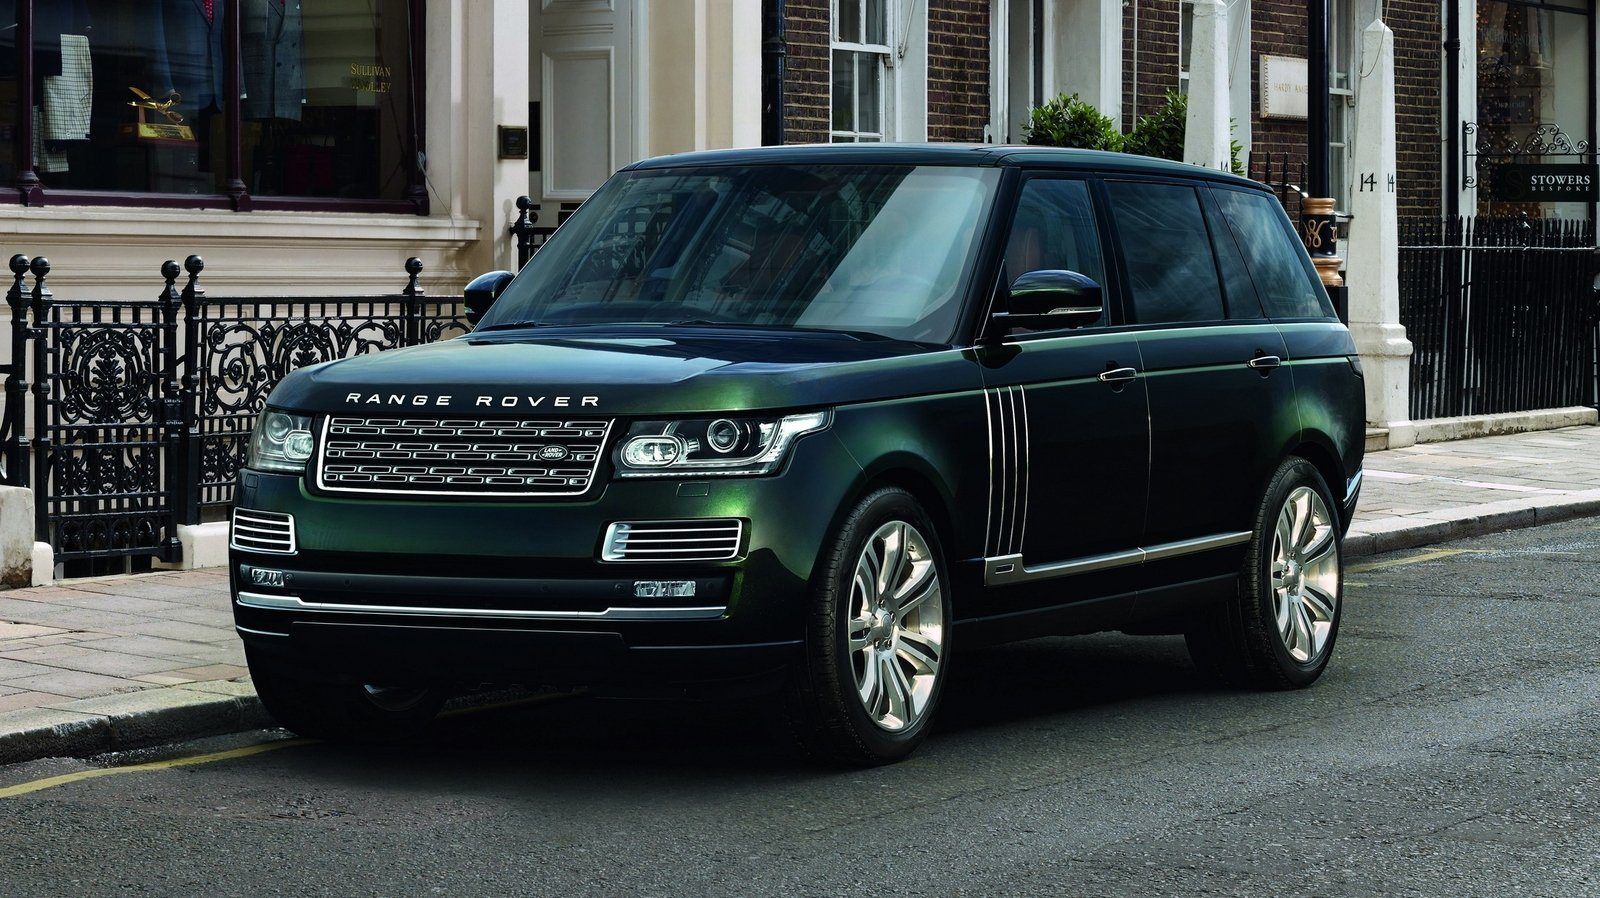 2015 land rover range rover svo holland holland special edition picture 576542 car review. Black Bedroom Furniture Sets. Home Design Ideas